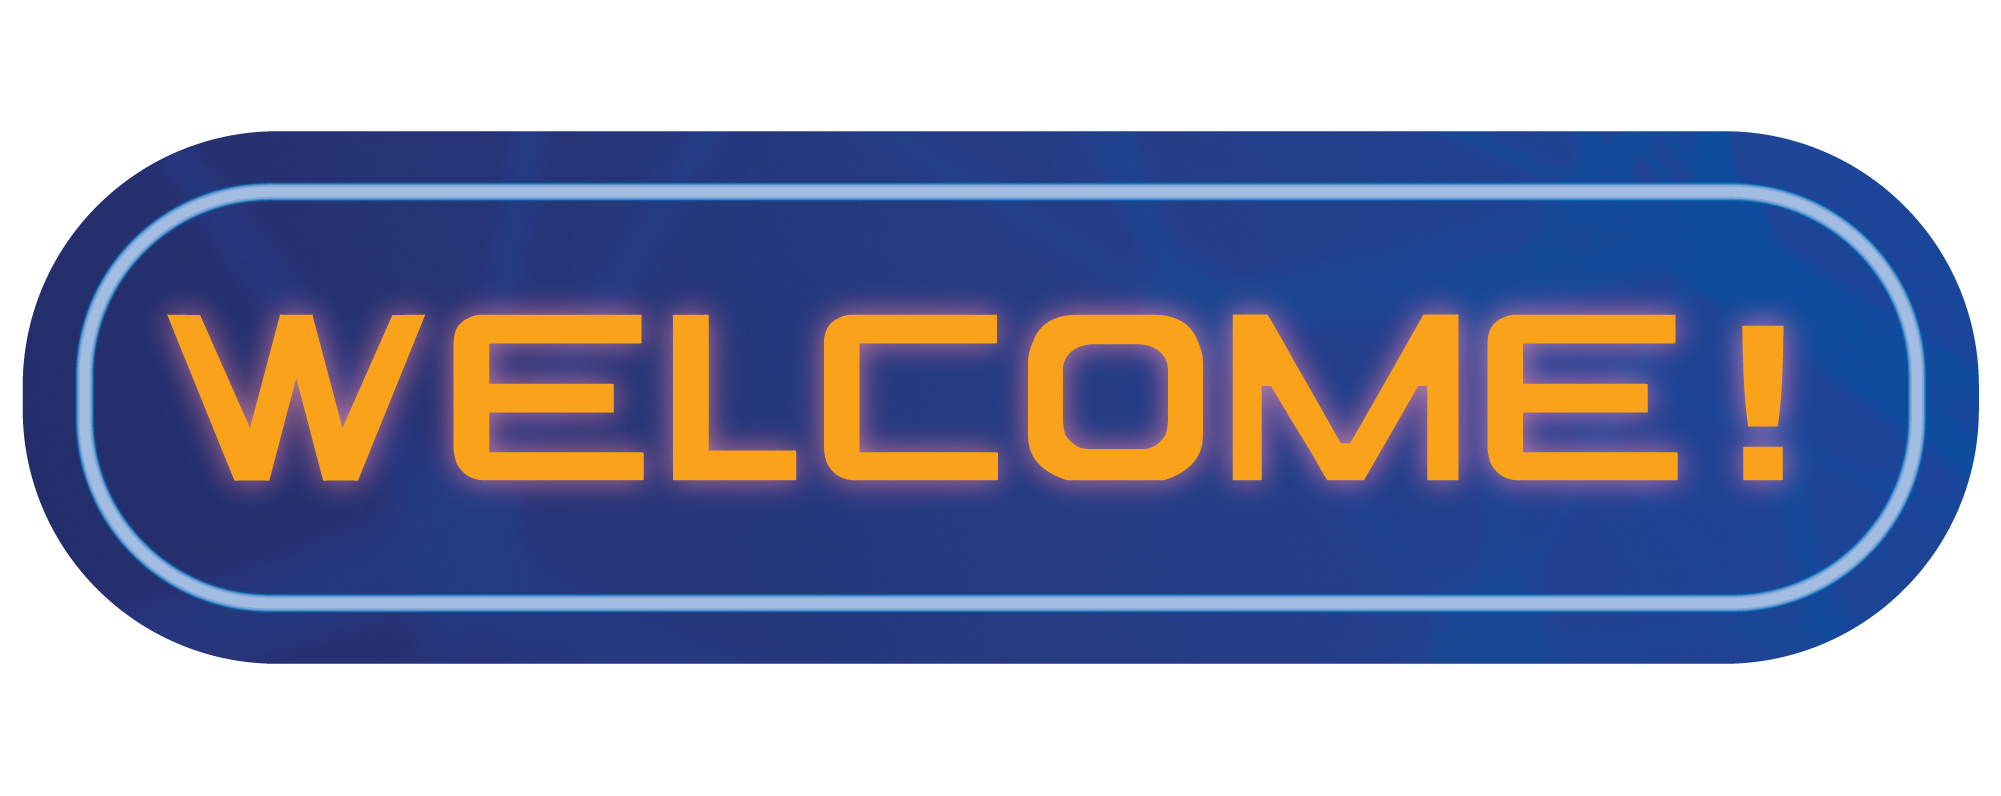 BMX-WELCOME-01.png